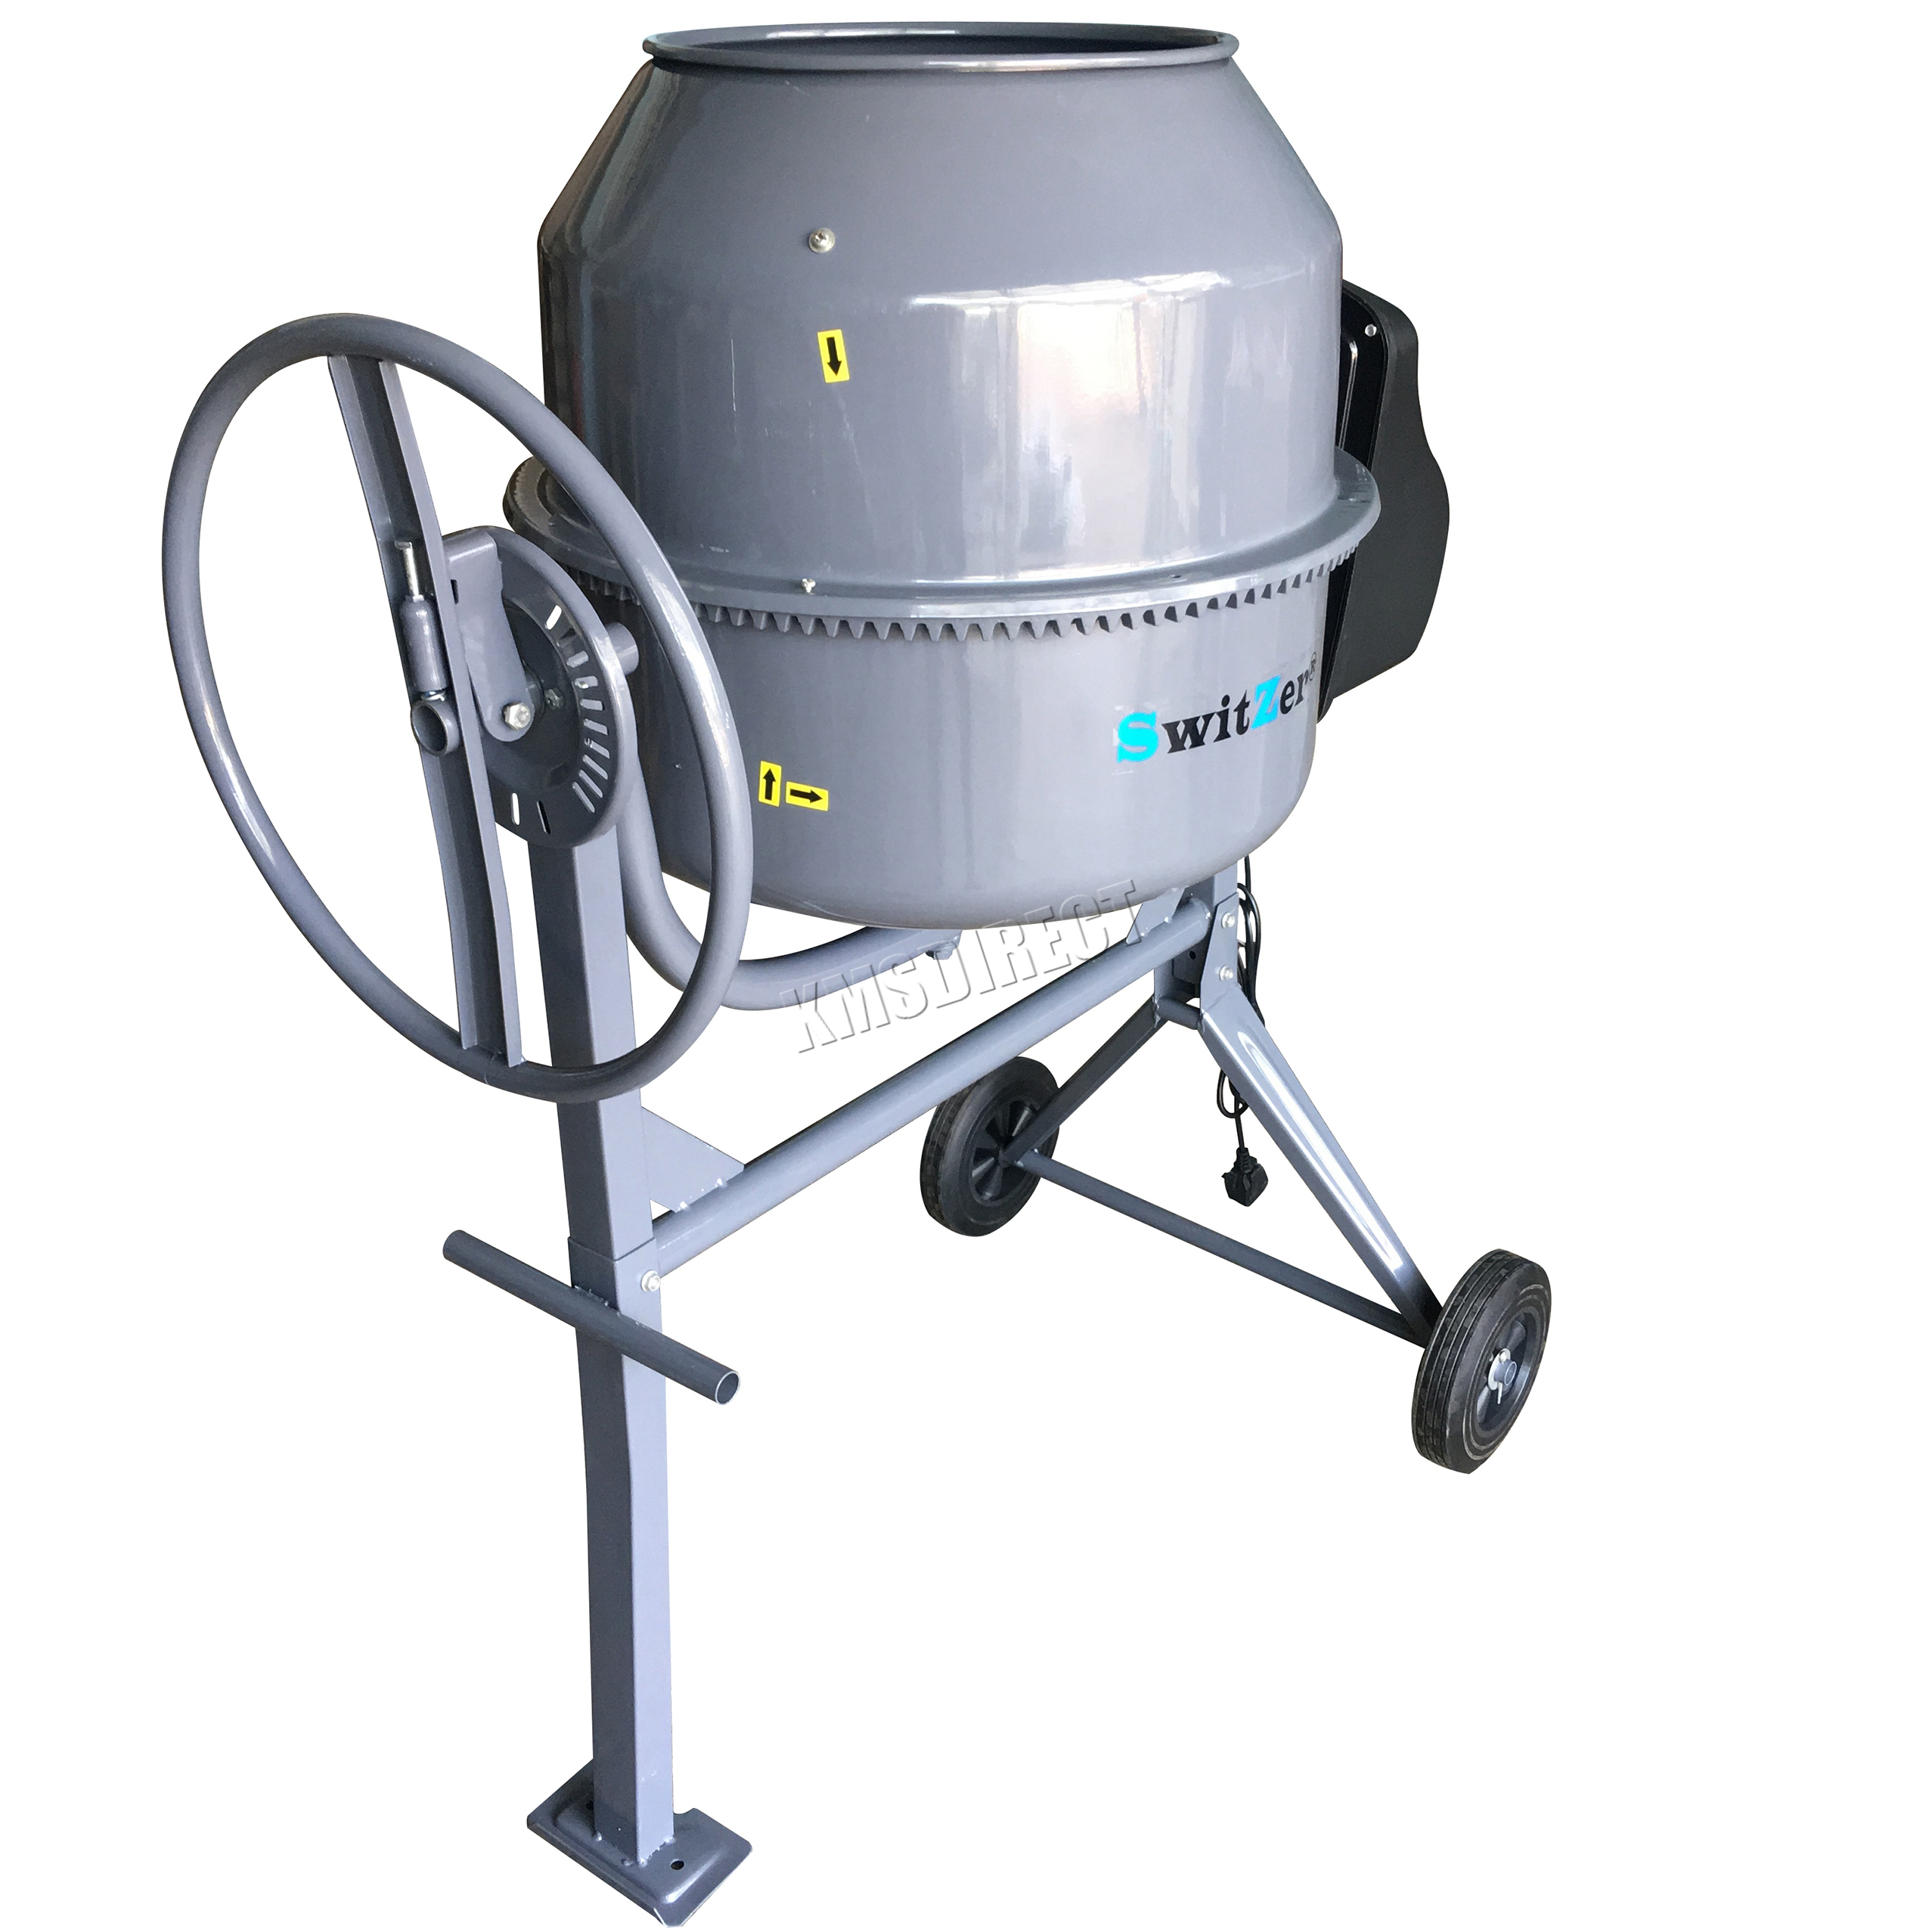 SwitZer 650W Electric Concrete Cement Mixer Mortar Plaster Machine 180L Drum